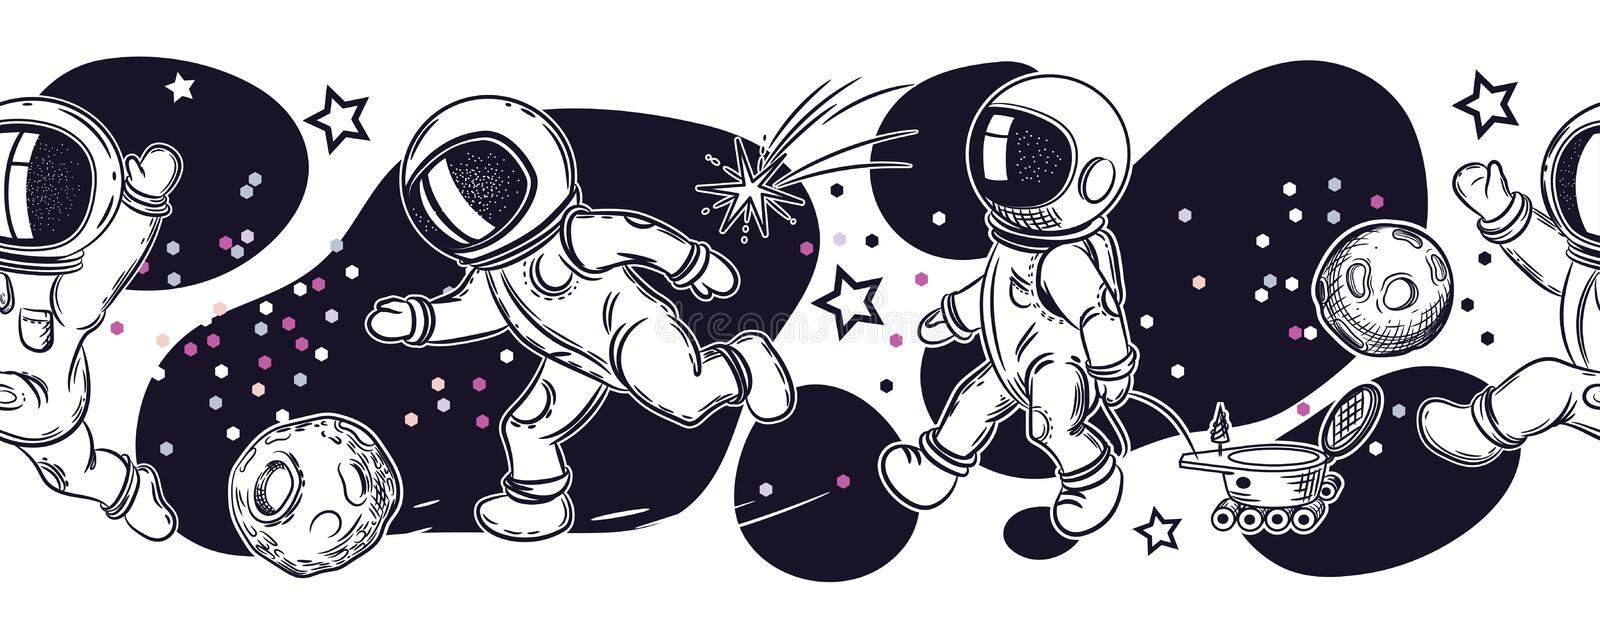 Set of images of astronauts. Astronauts are playing football, fishing, flying in a balloon. royalty free illustration